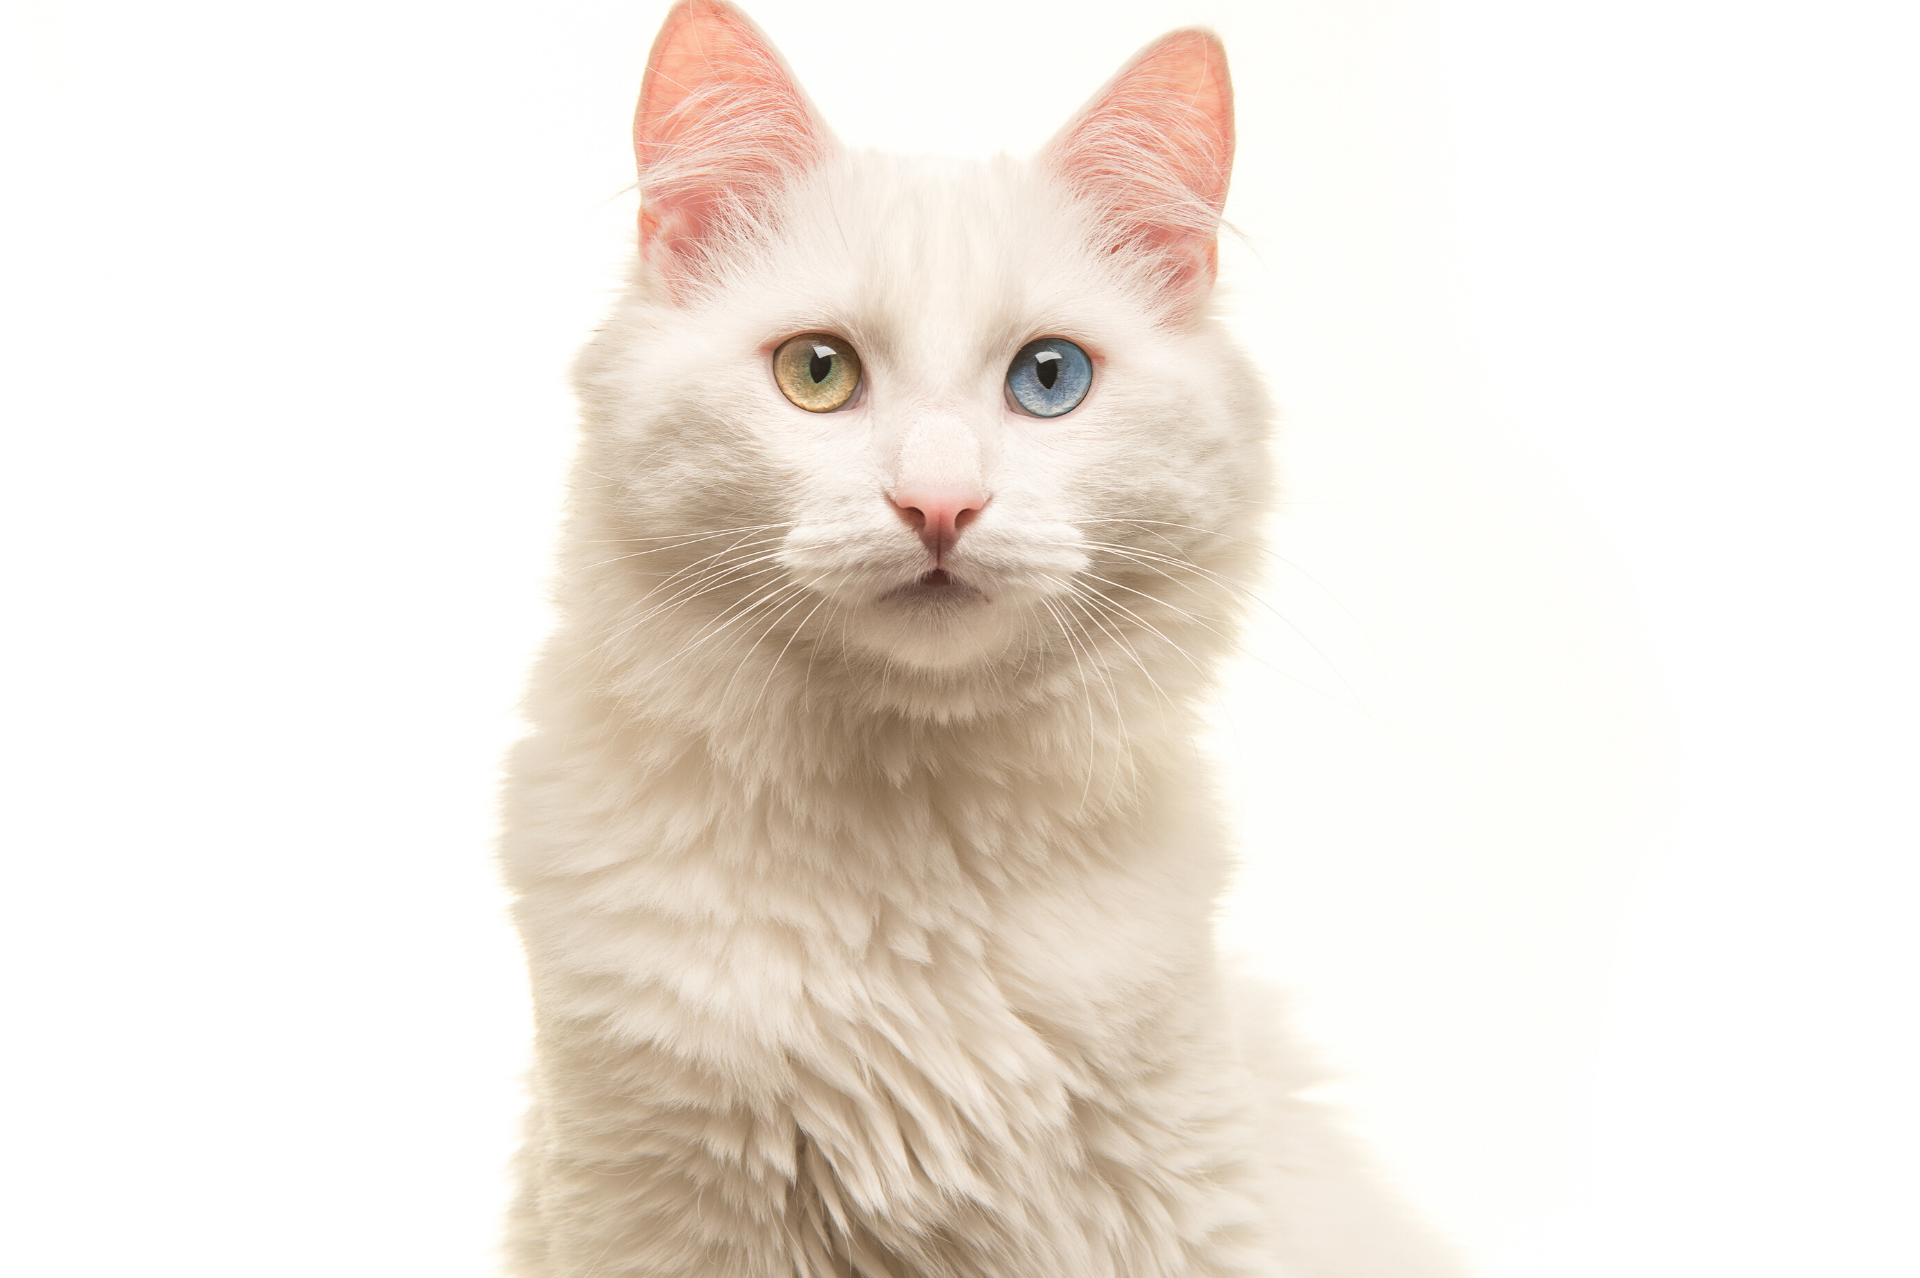 Stunning odd-eyed white Turkish Angora